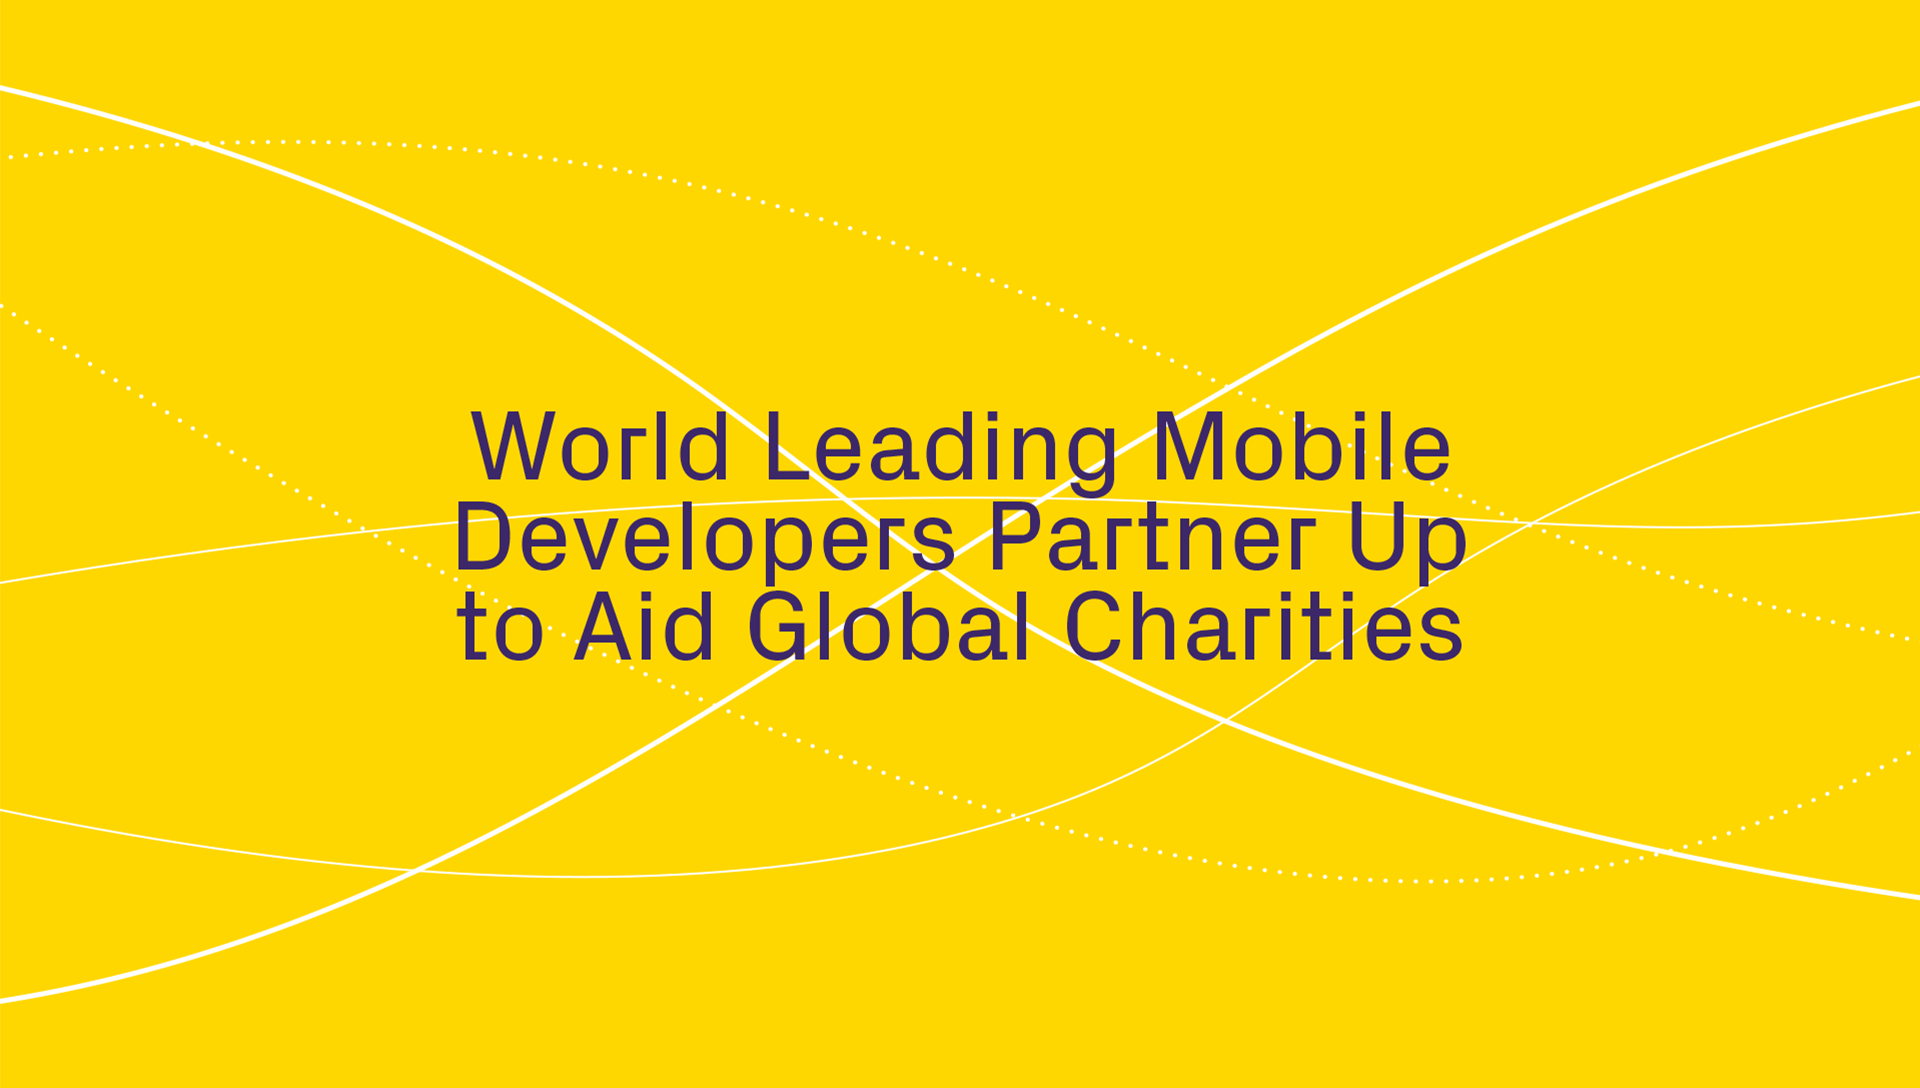 World Leading Mobile Developers Partner Up to Aid in Global Charities